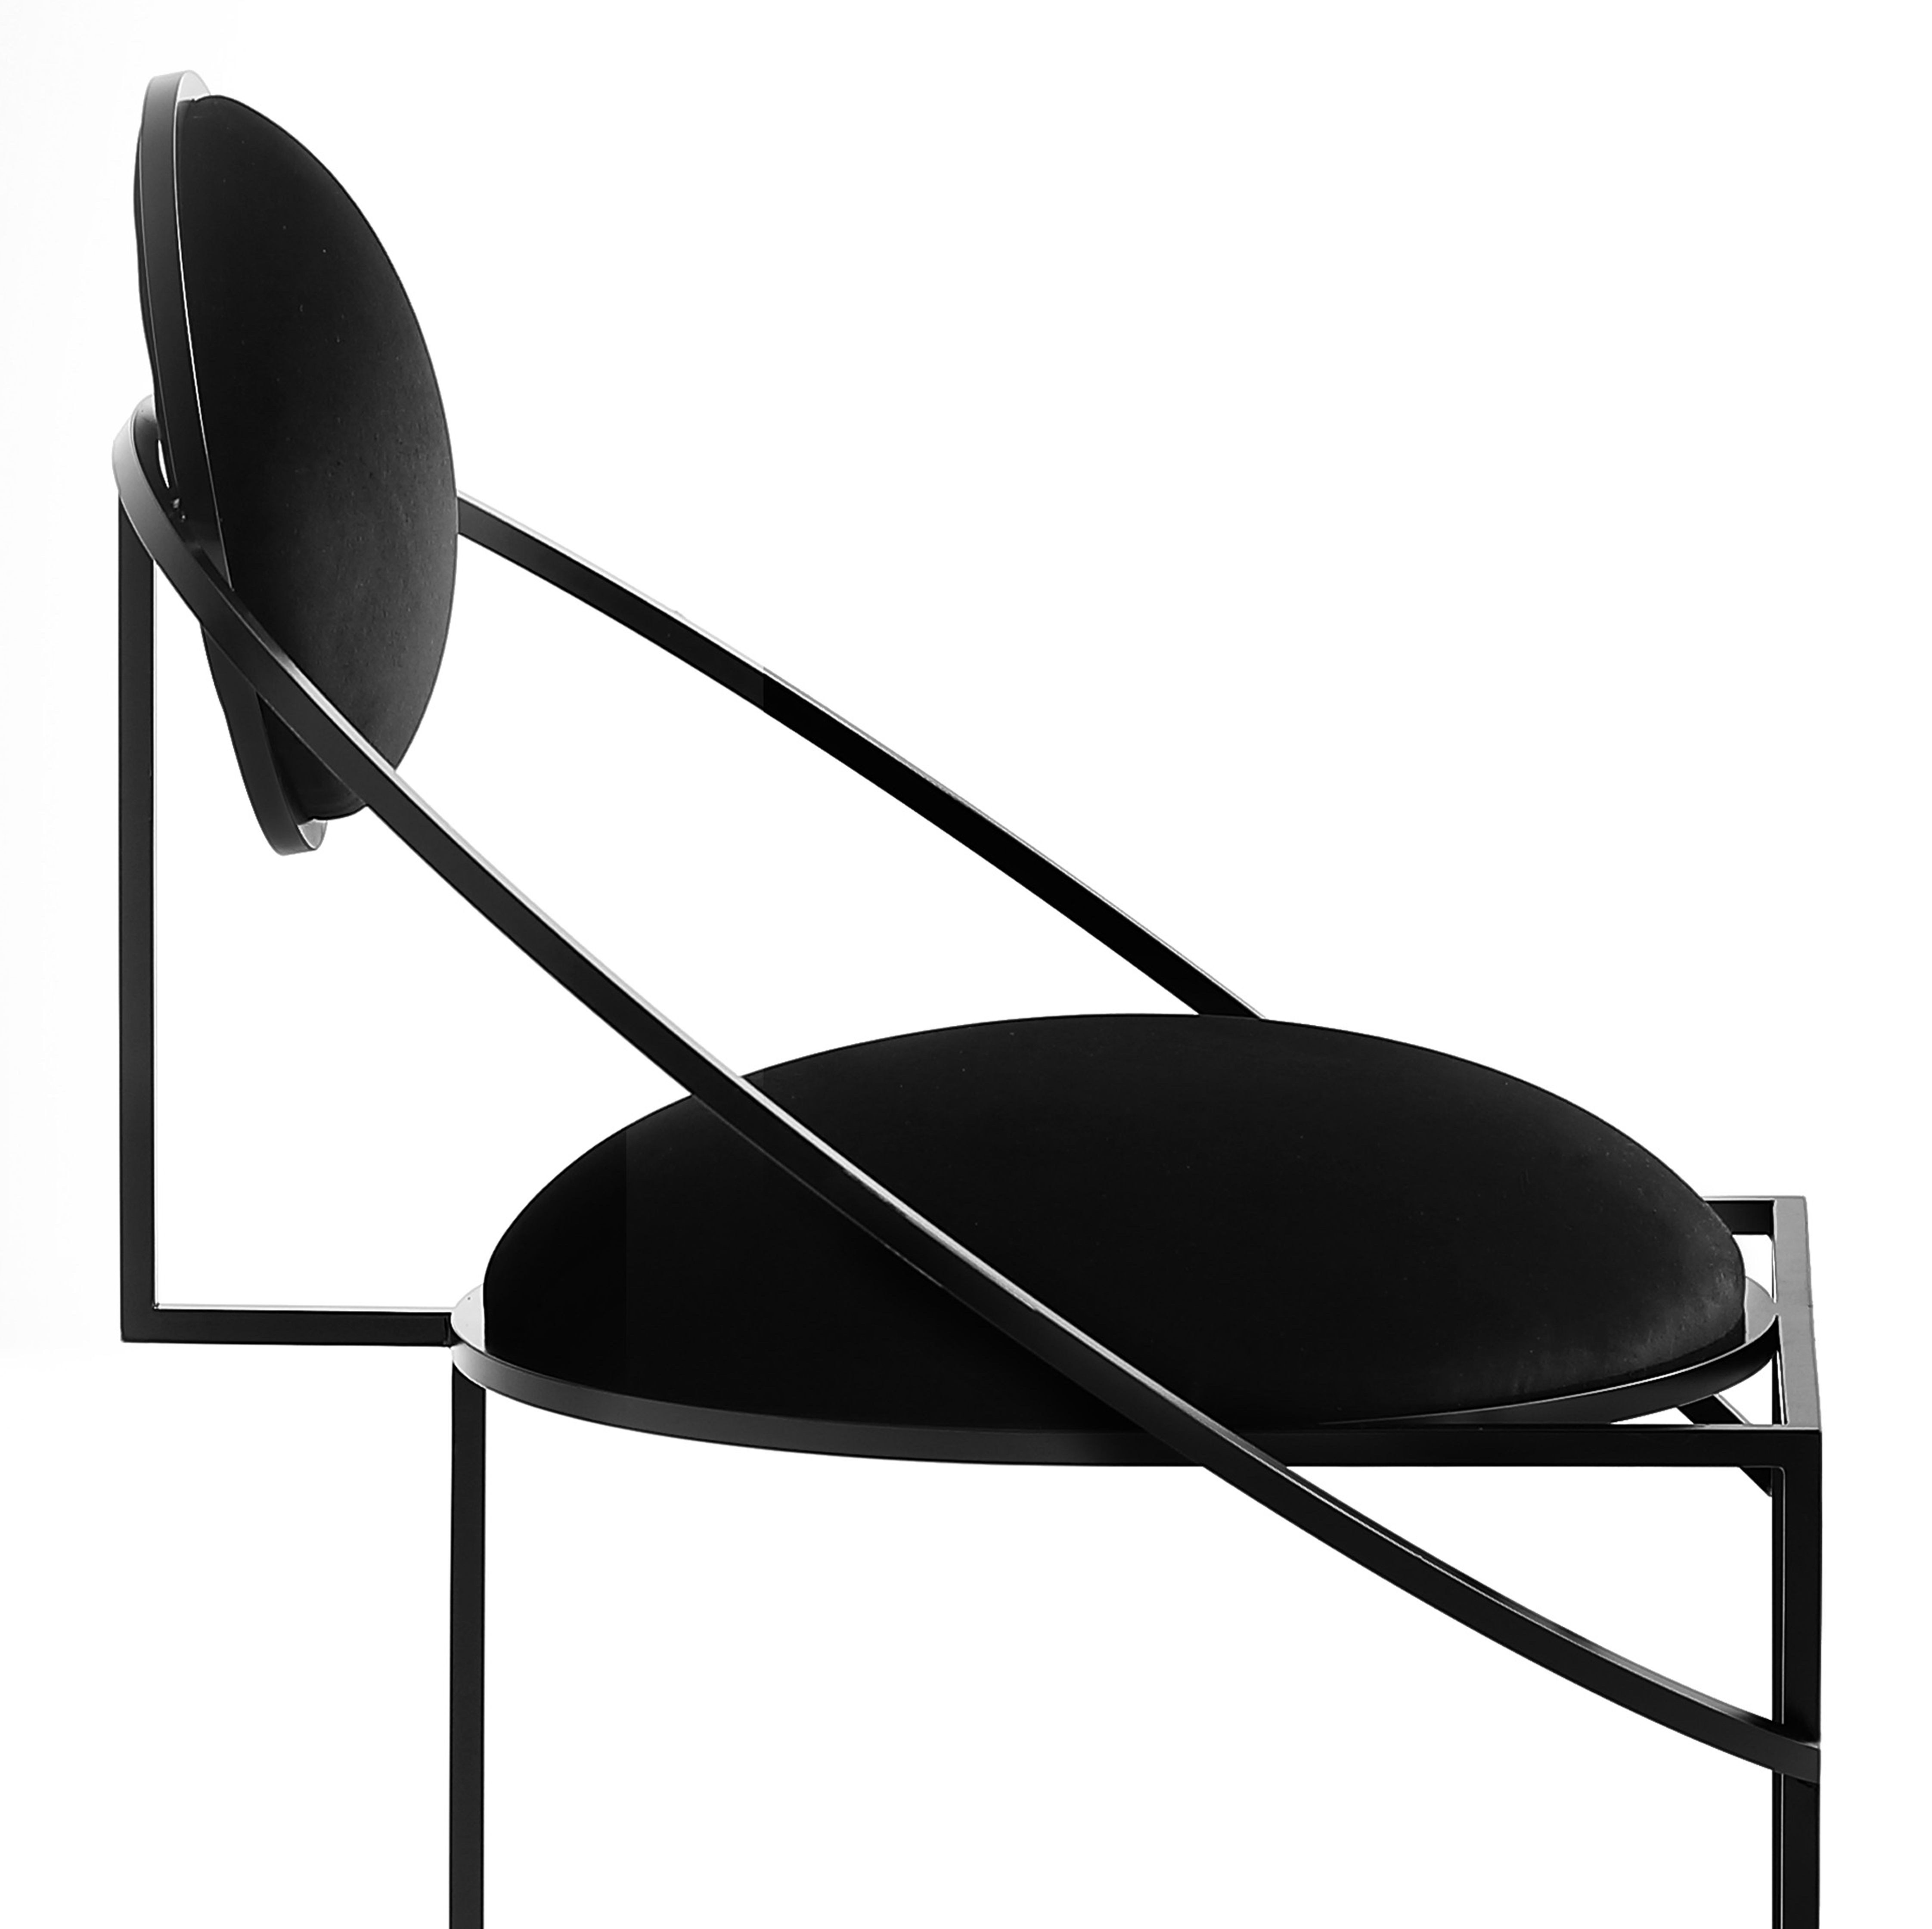 Orbit Armchair - <p>In the collection, Lara Bohinc develops her stellar themes, finding inspiration in planetary and lunar orbits, whose gravitationally curved trajectories drive the lines and shapes of the chairs. Constructed from thin square rod, the chairs are elegant, minimal and delicate. They are finished in galvanised steel and wool fabrics by Kvadrat.</p> <p>The Orbit chair is available with or without circular armrest.*</p>  | Matter of Stuff